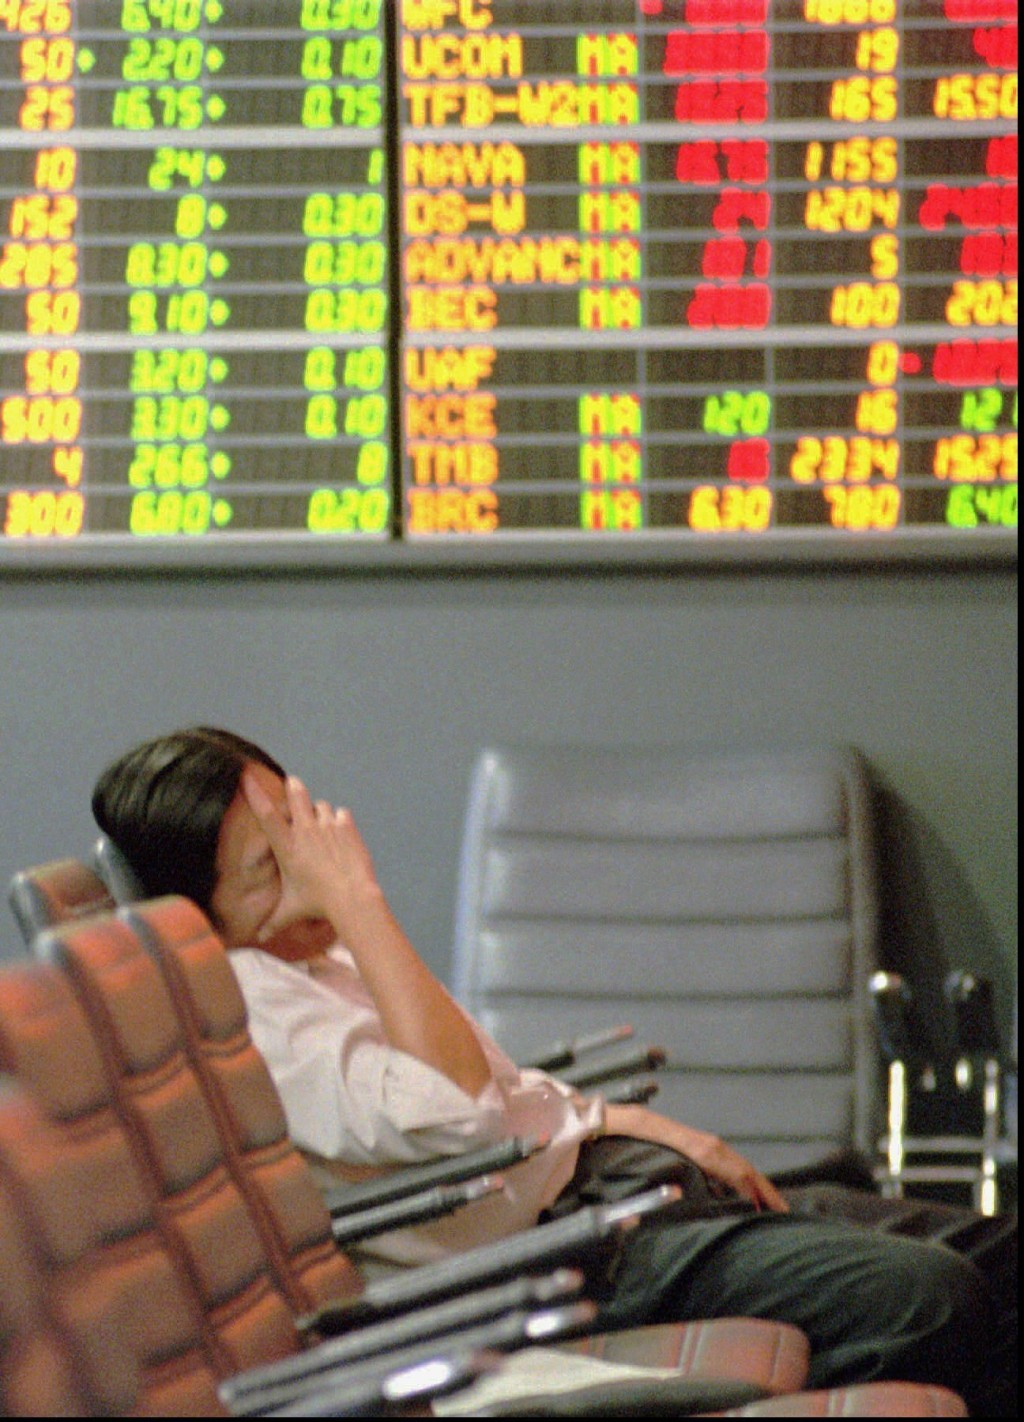 FILE- In this Nov. 21, 1997, file photo a Thai stock investor falls asleep while lonely monitoring a trading board at a stock house in the Stock Excha...